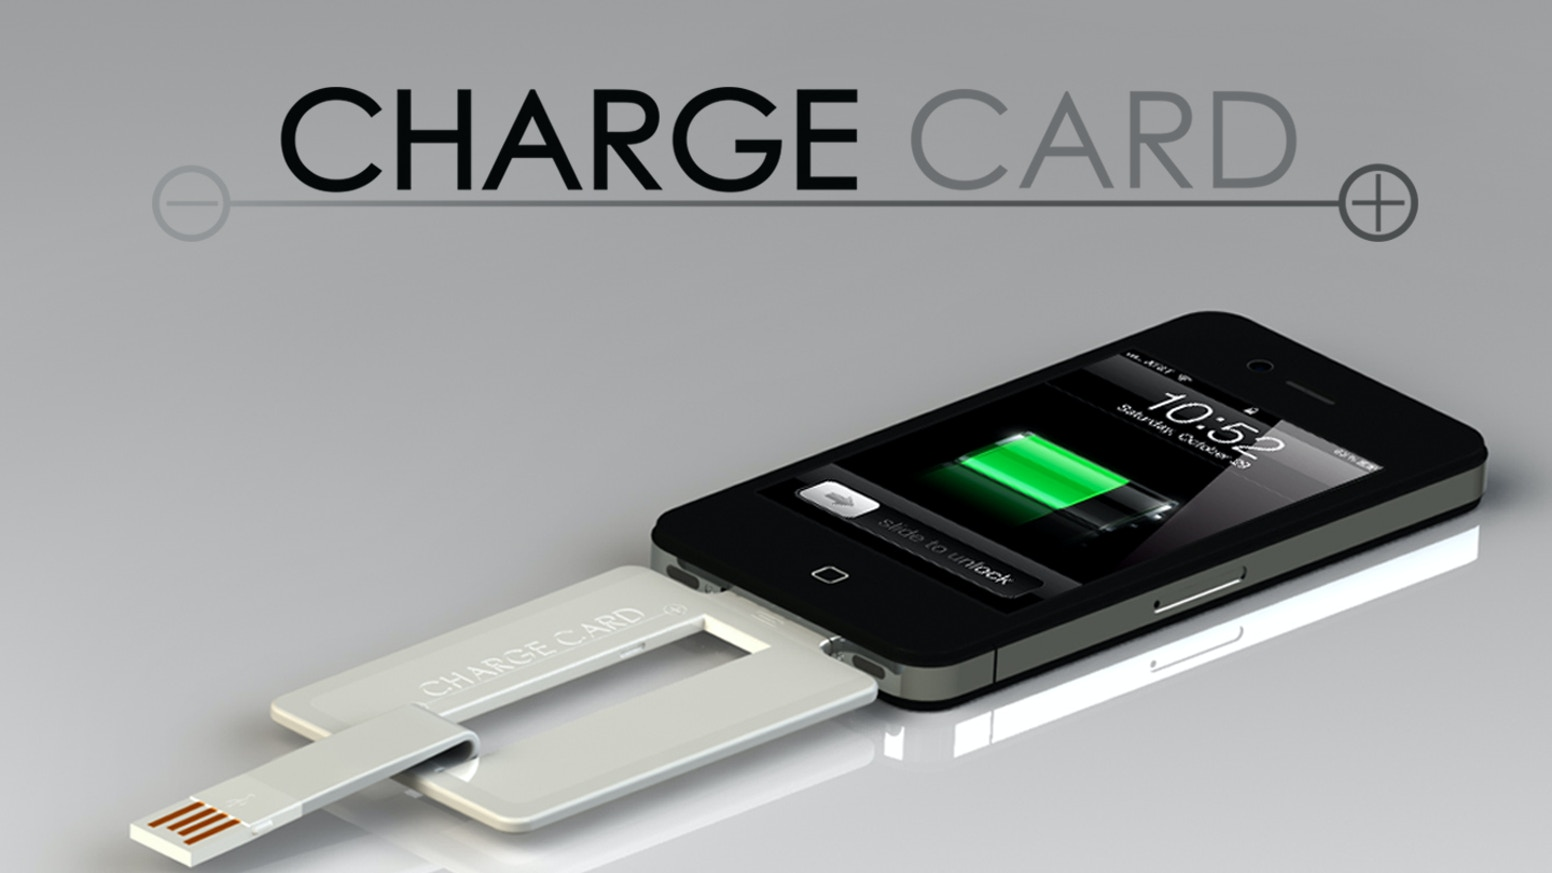 ChargeCard is a USB cable that's thin enough to fit easily into your wallet, purse or pocket. Visit us at www.hellonomad.com